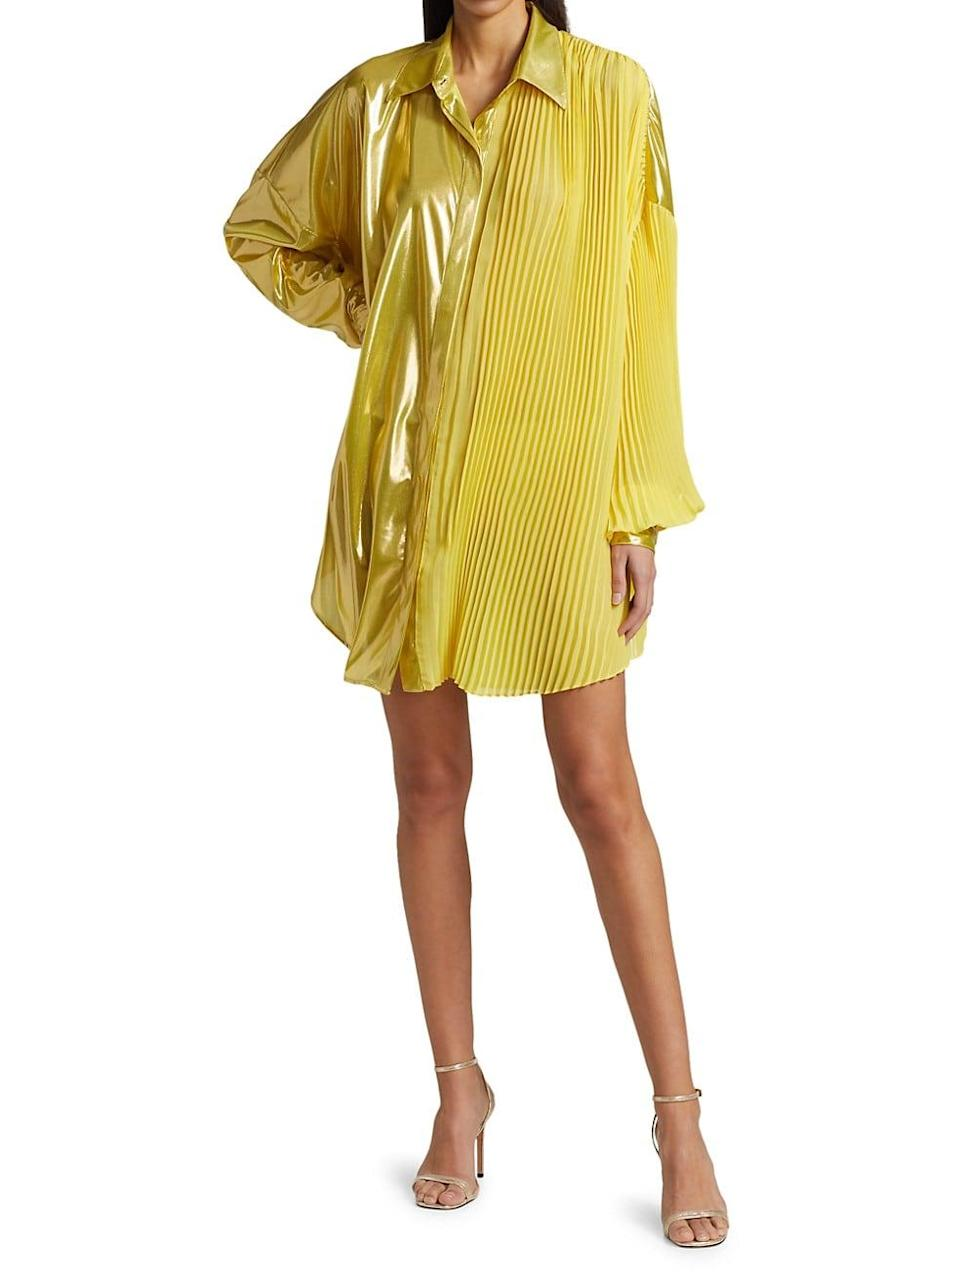 Honesty Metallic Tunic